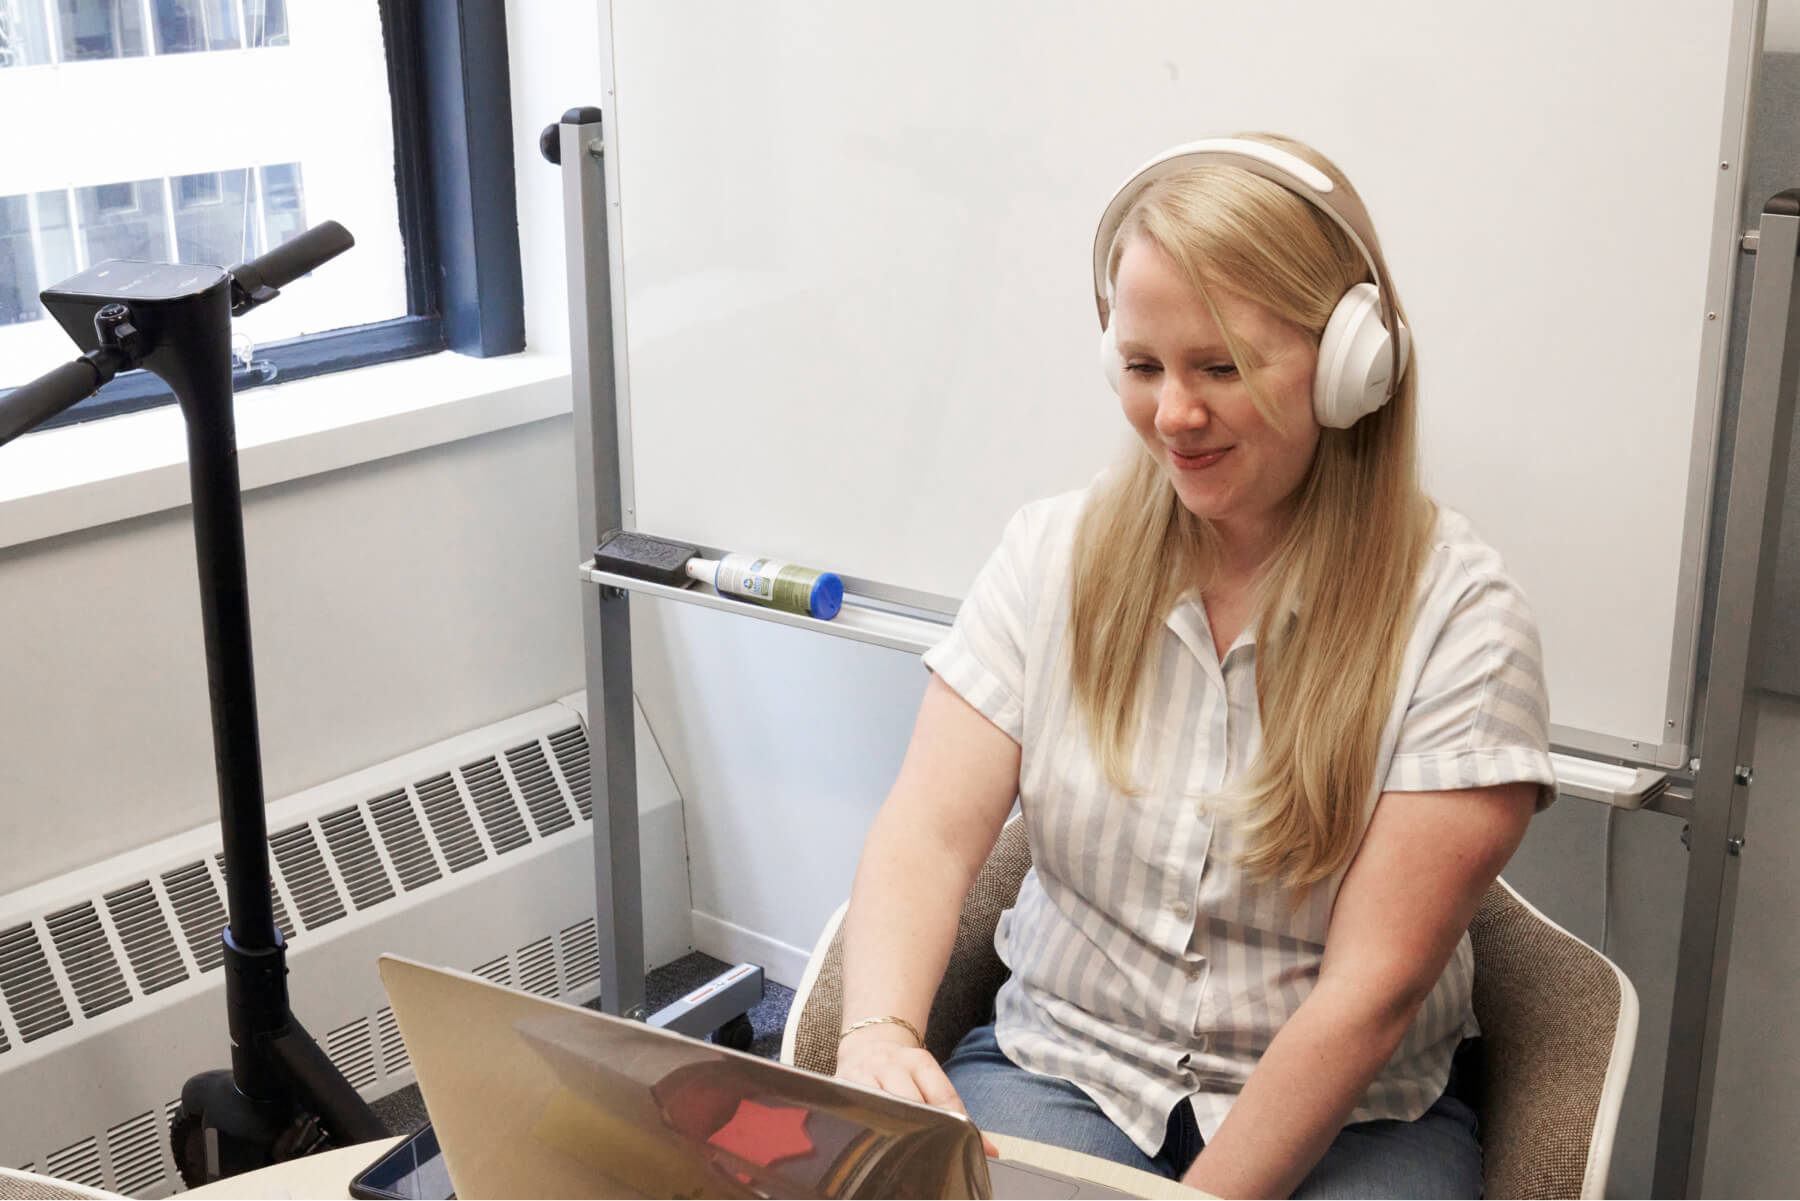 Woman sitting at a desk typing on a laptop computer wearing earphones